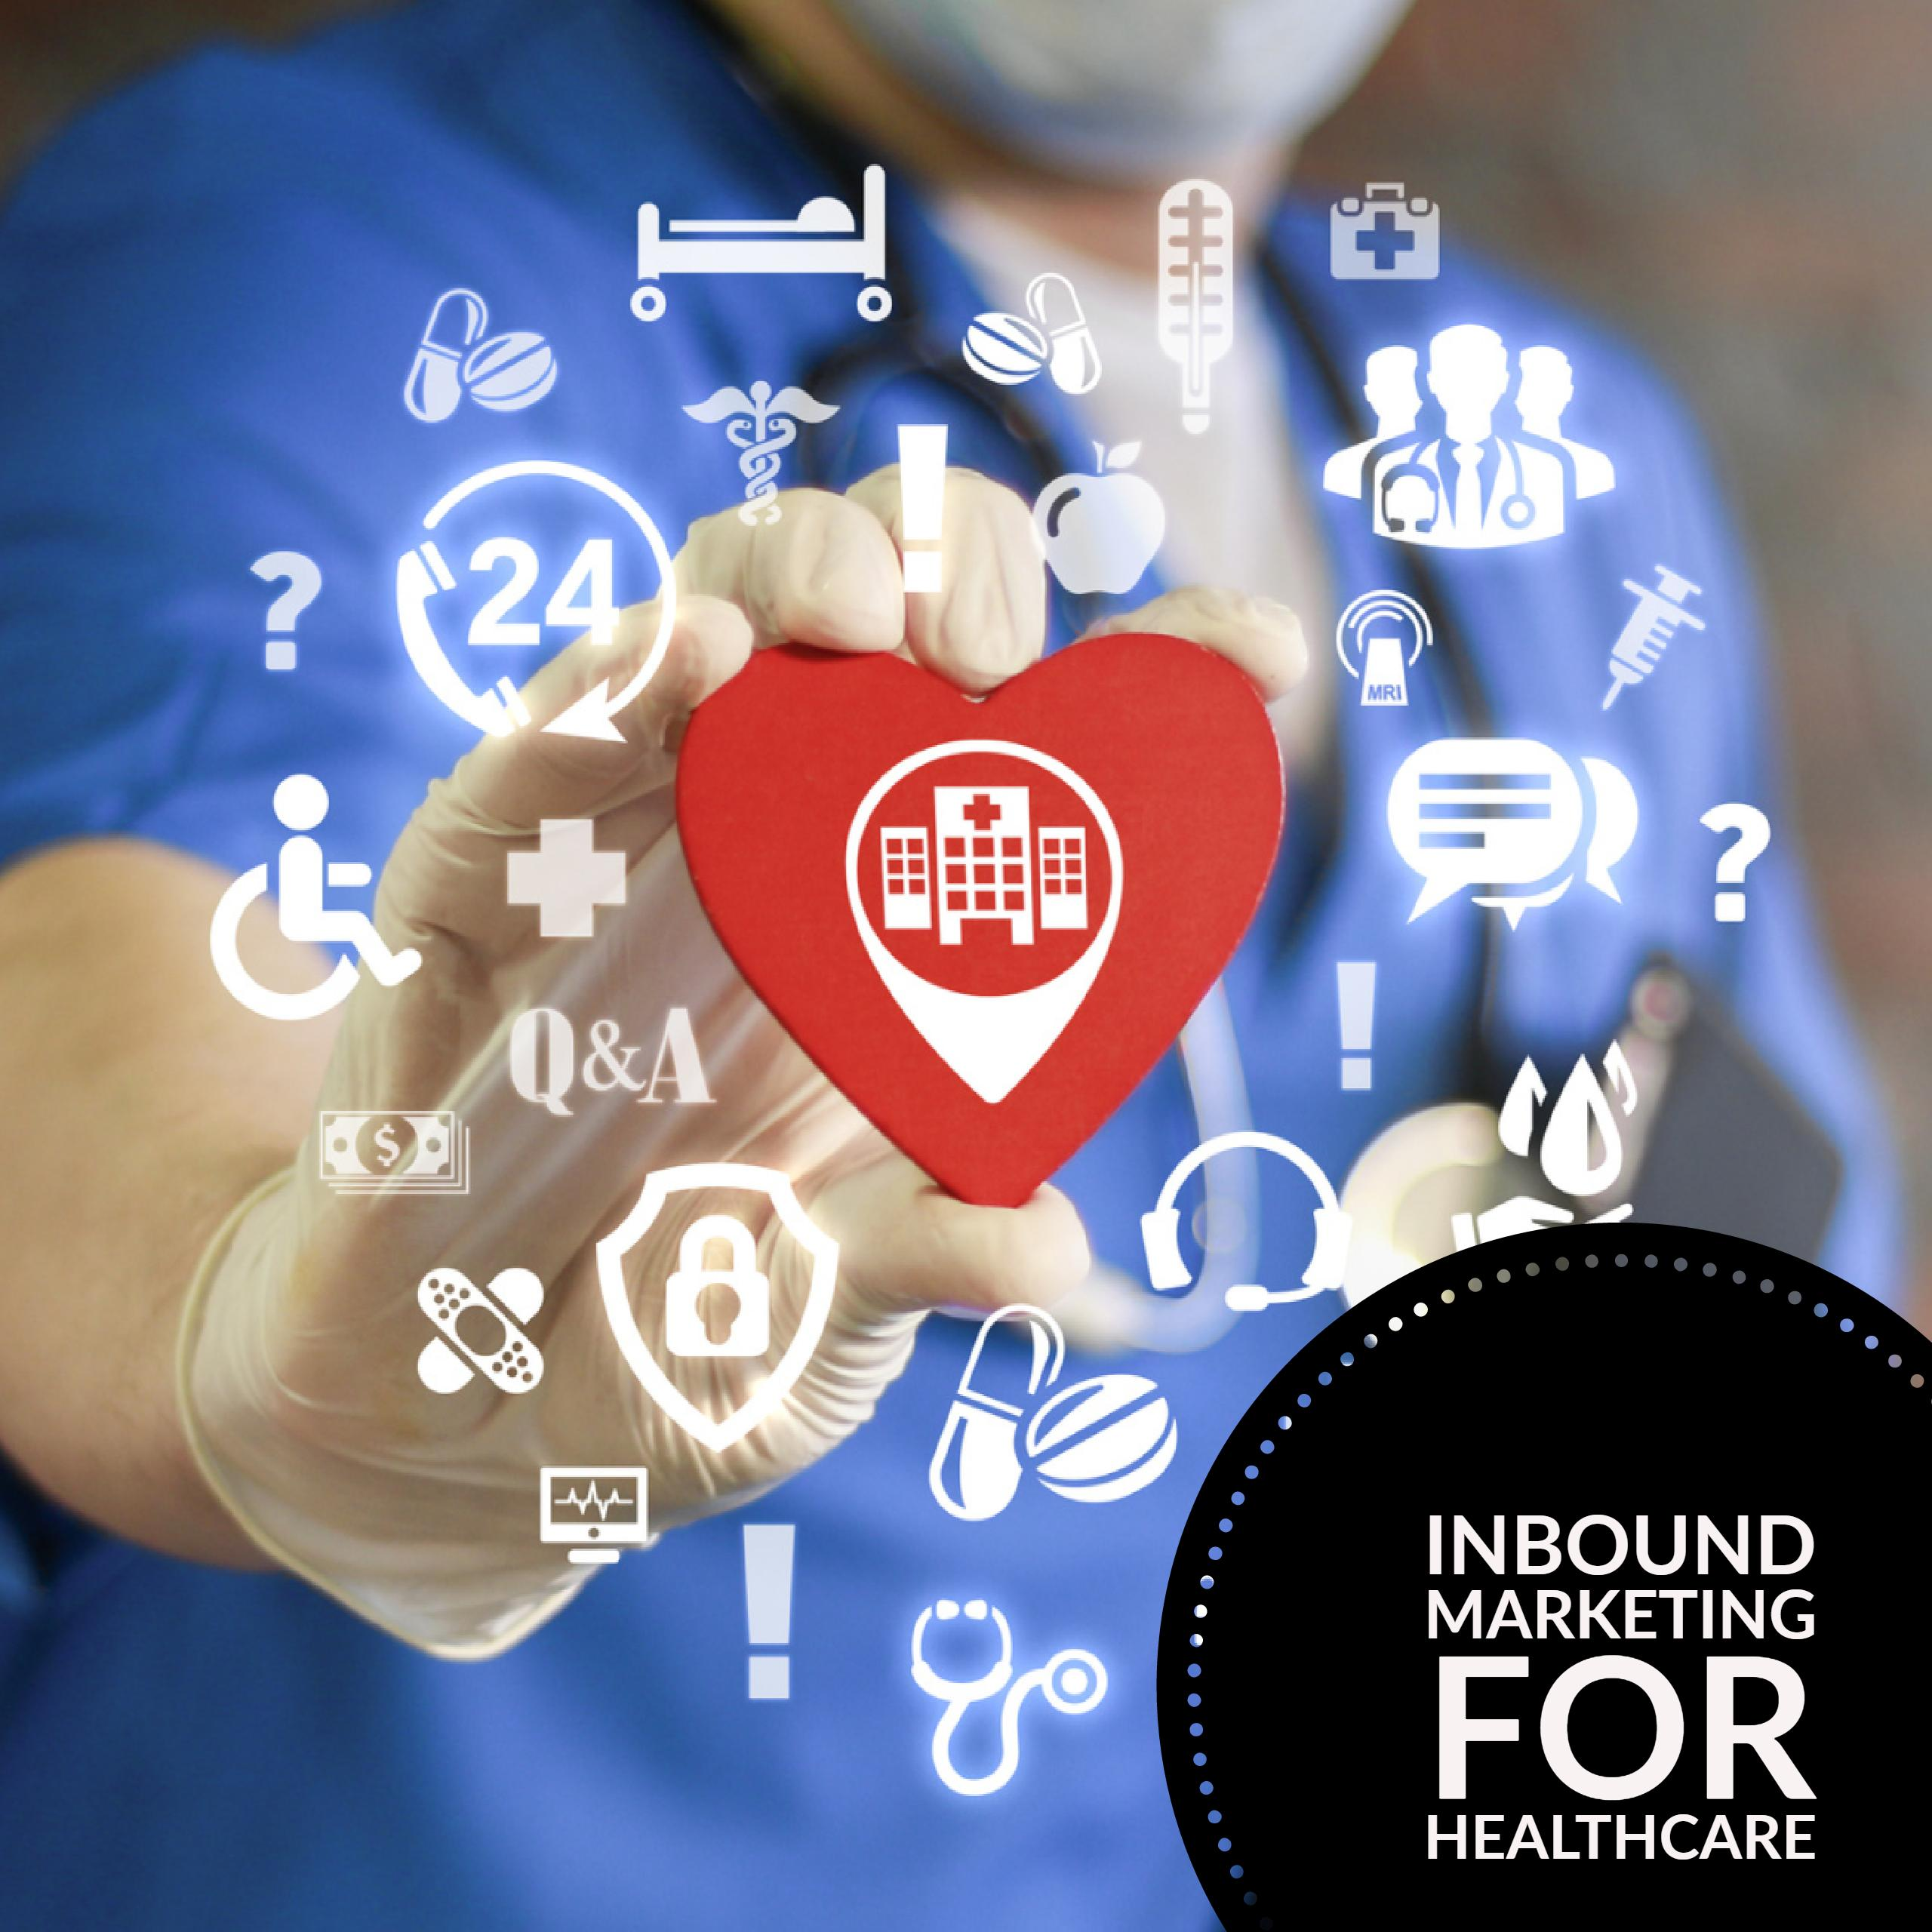 Inbound Marketing Is a Perfect Fit for B2B in the Healthcare Industry